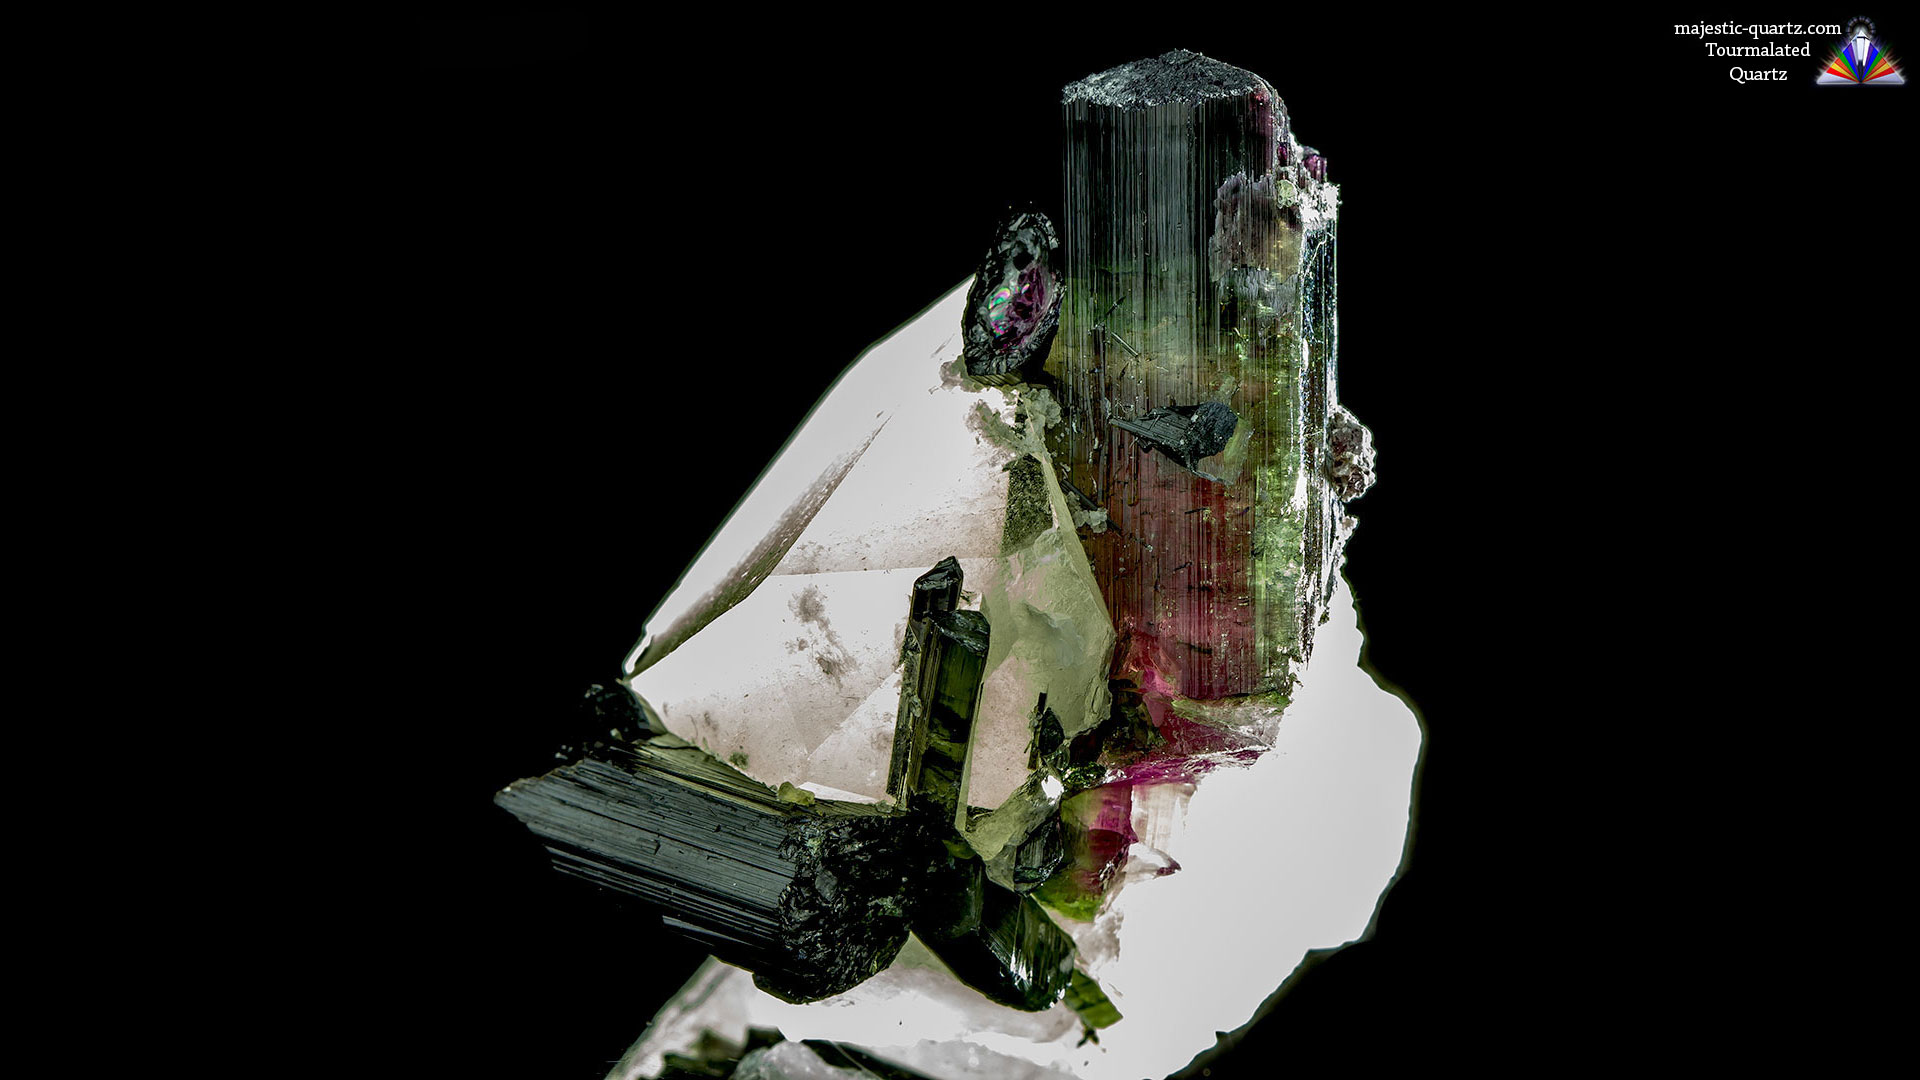 Tourmalated Quartz Properties and Meaning - Photograph by Anthony Bradford